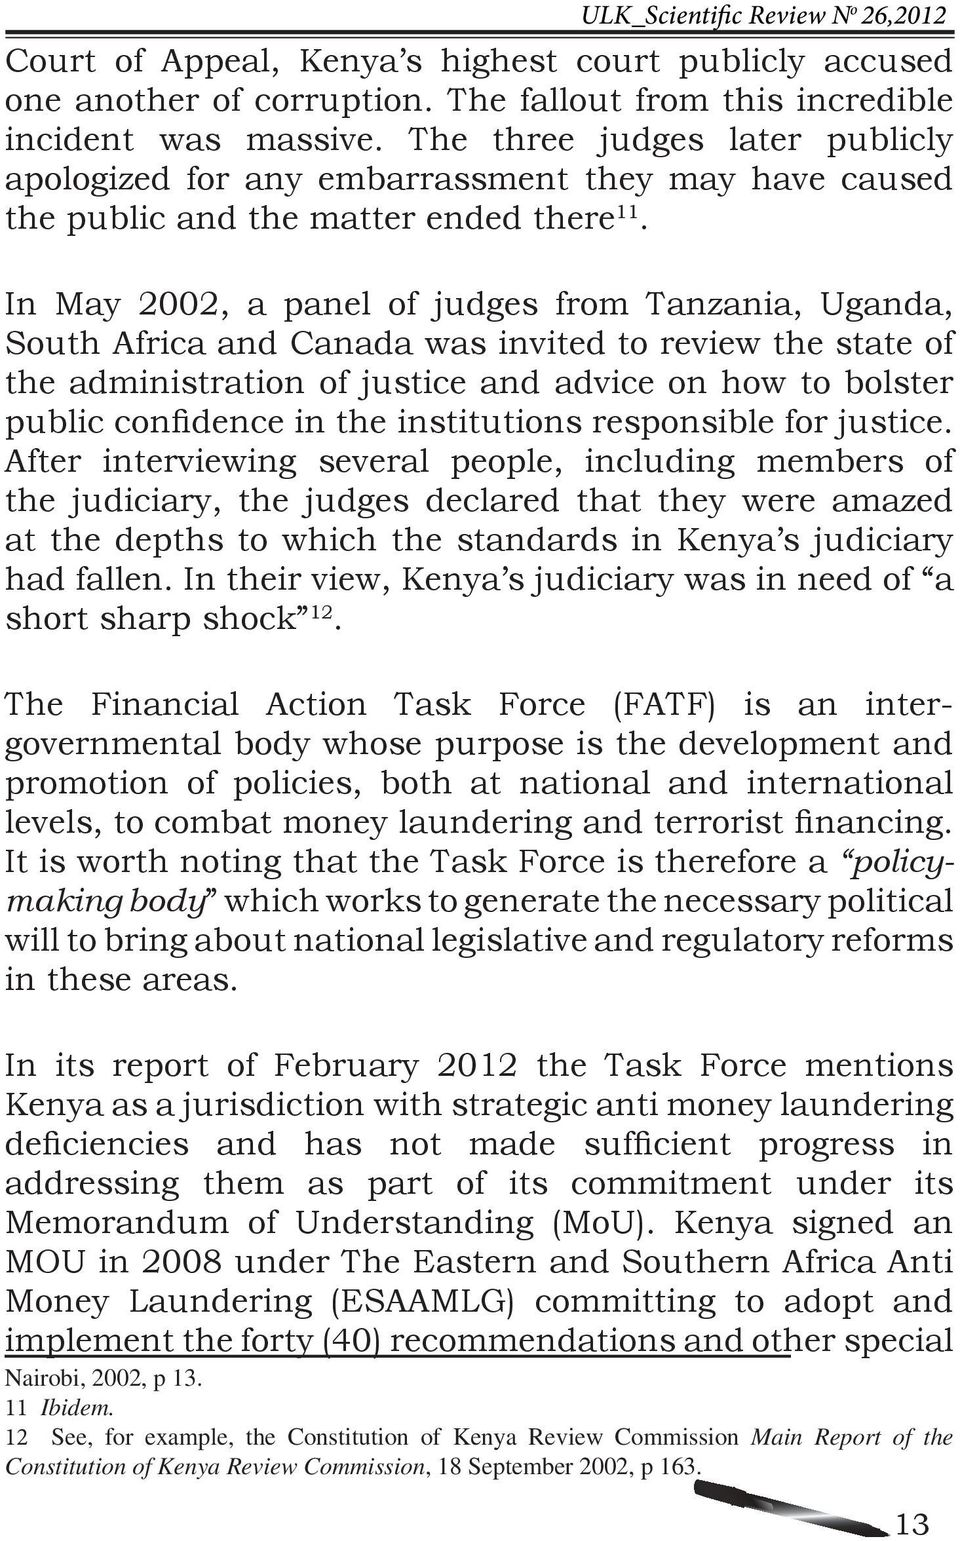 In May 2002, a panel of judges from Tanzania, Uganda, South Africa and Canada was invited to review the state of the administration of justice and advice on how to bolster public confidence in the